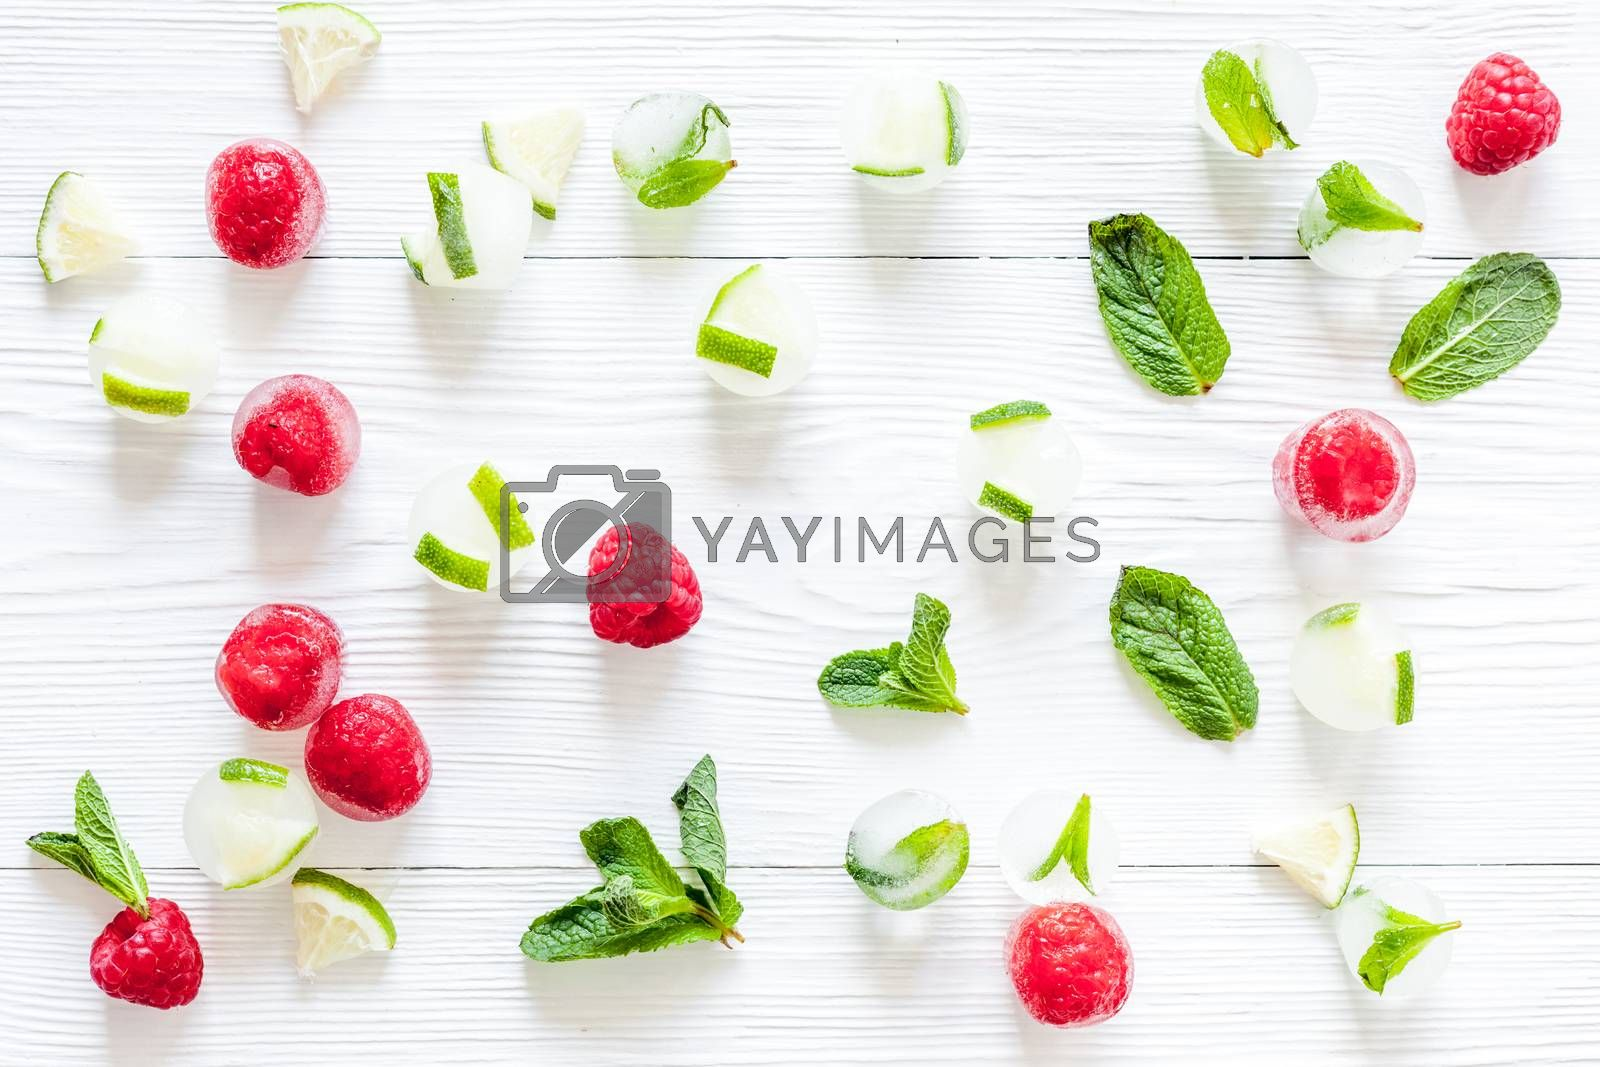 Berries frozen in ice cubes background flat lay.